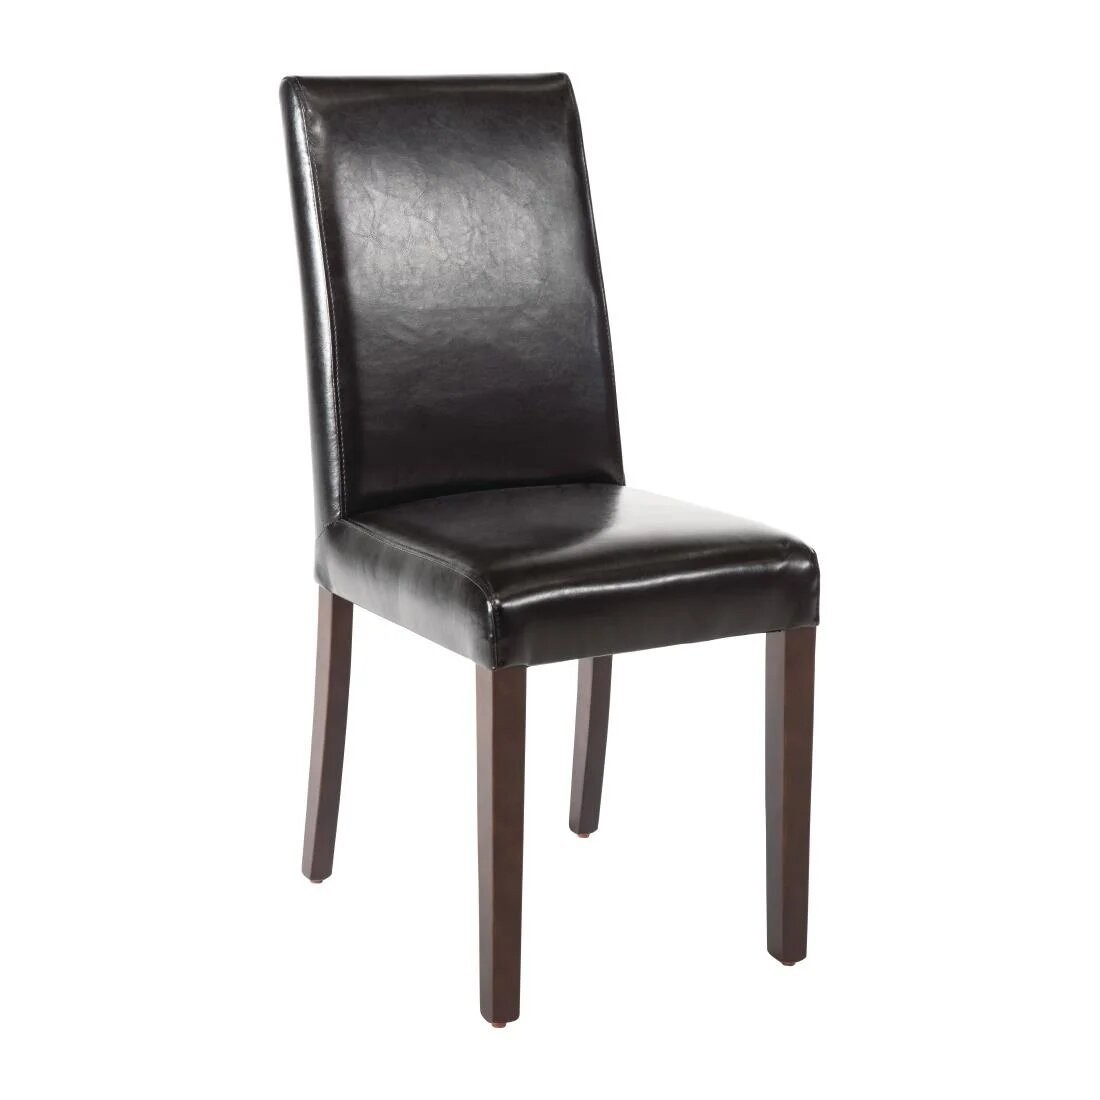 Bolero GF954 Black Faux Leather Dining Chairs - Pack 2 (Default)